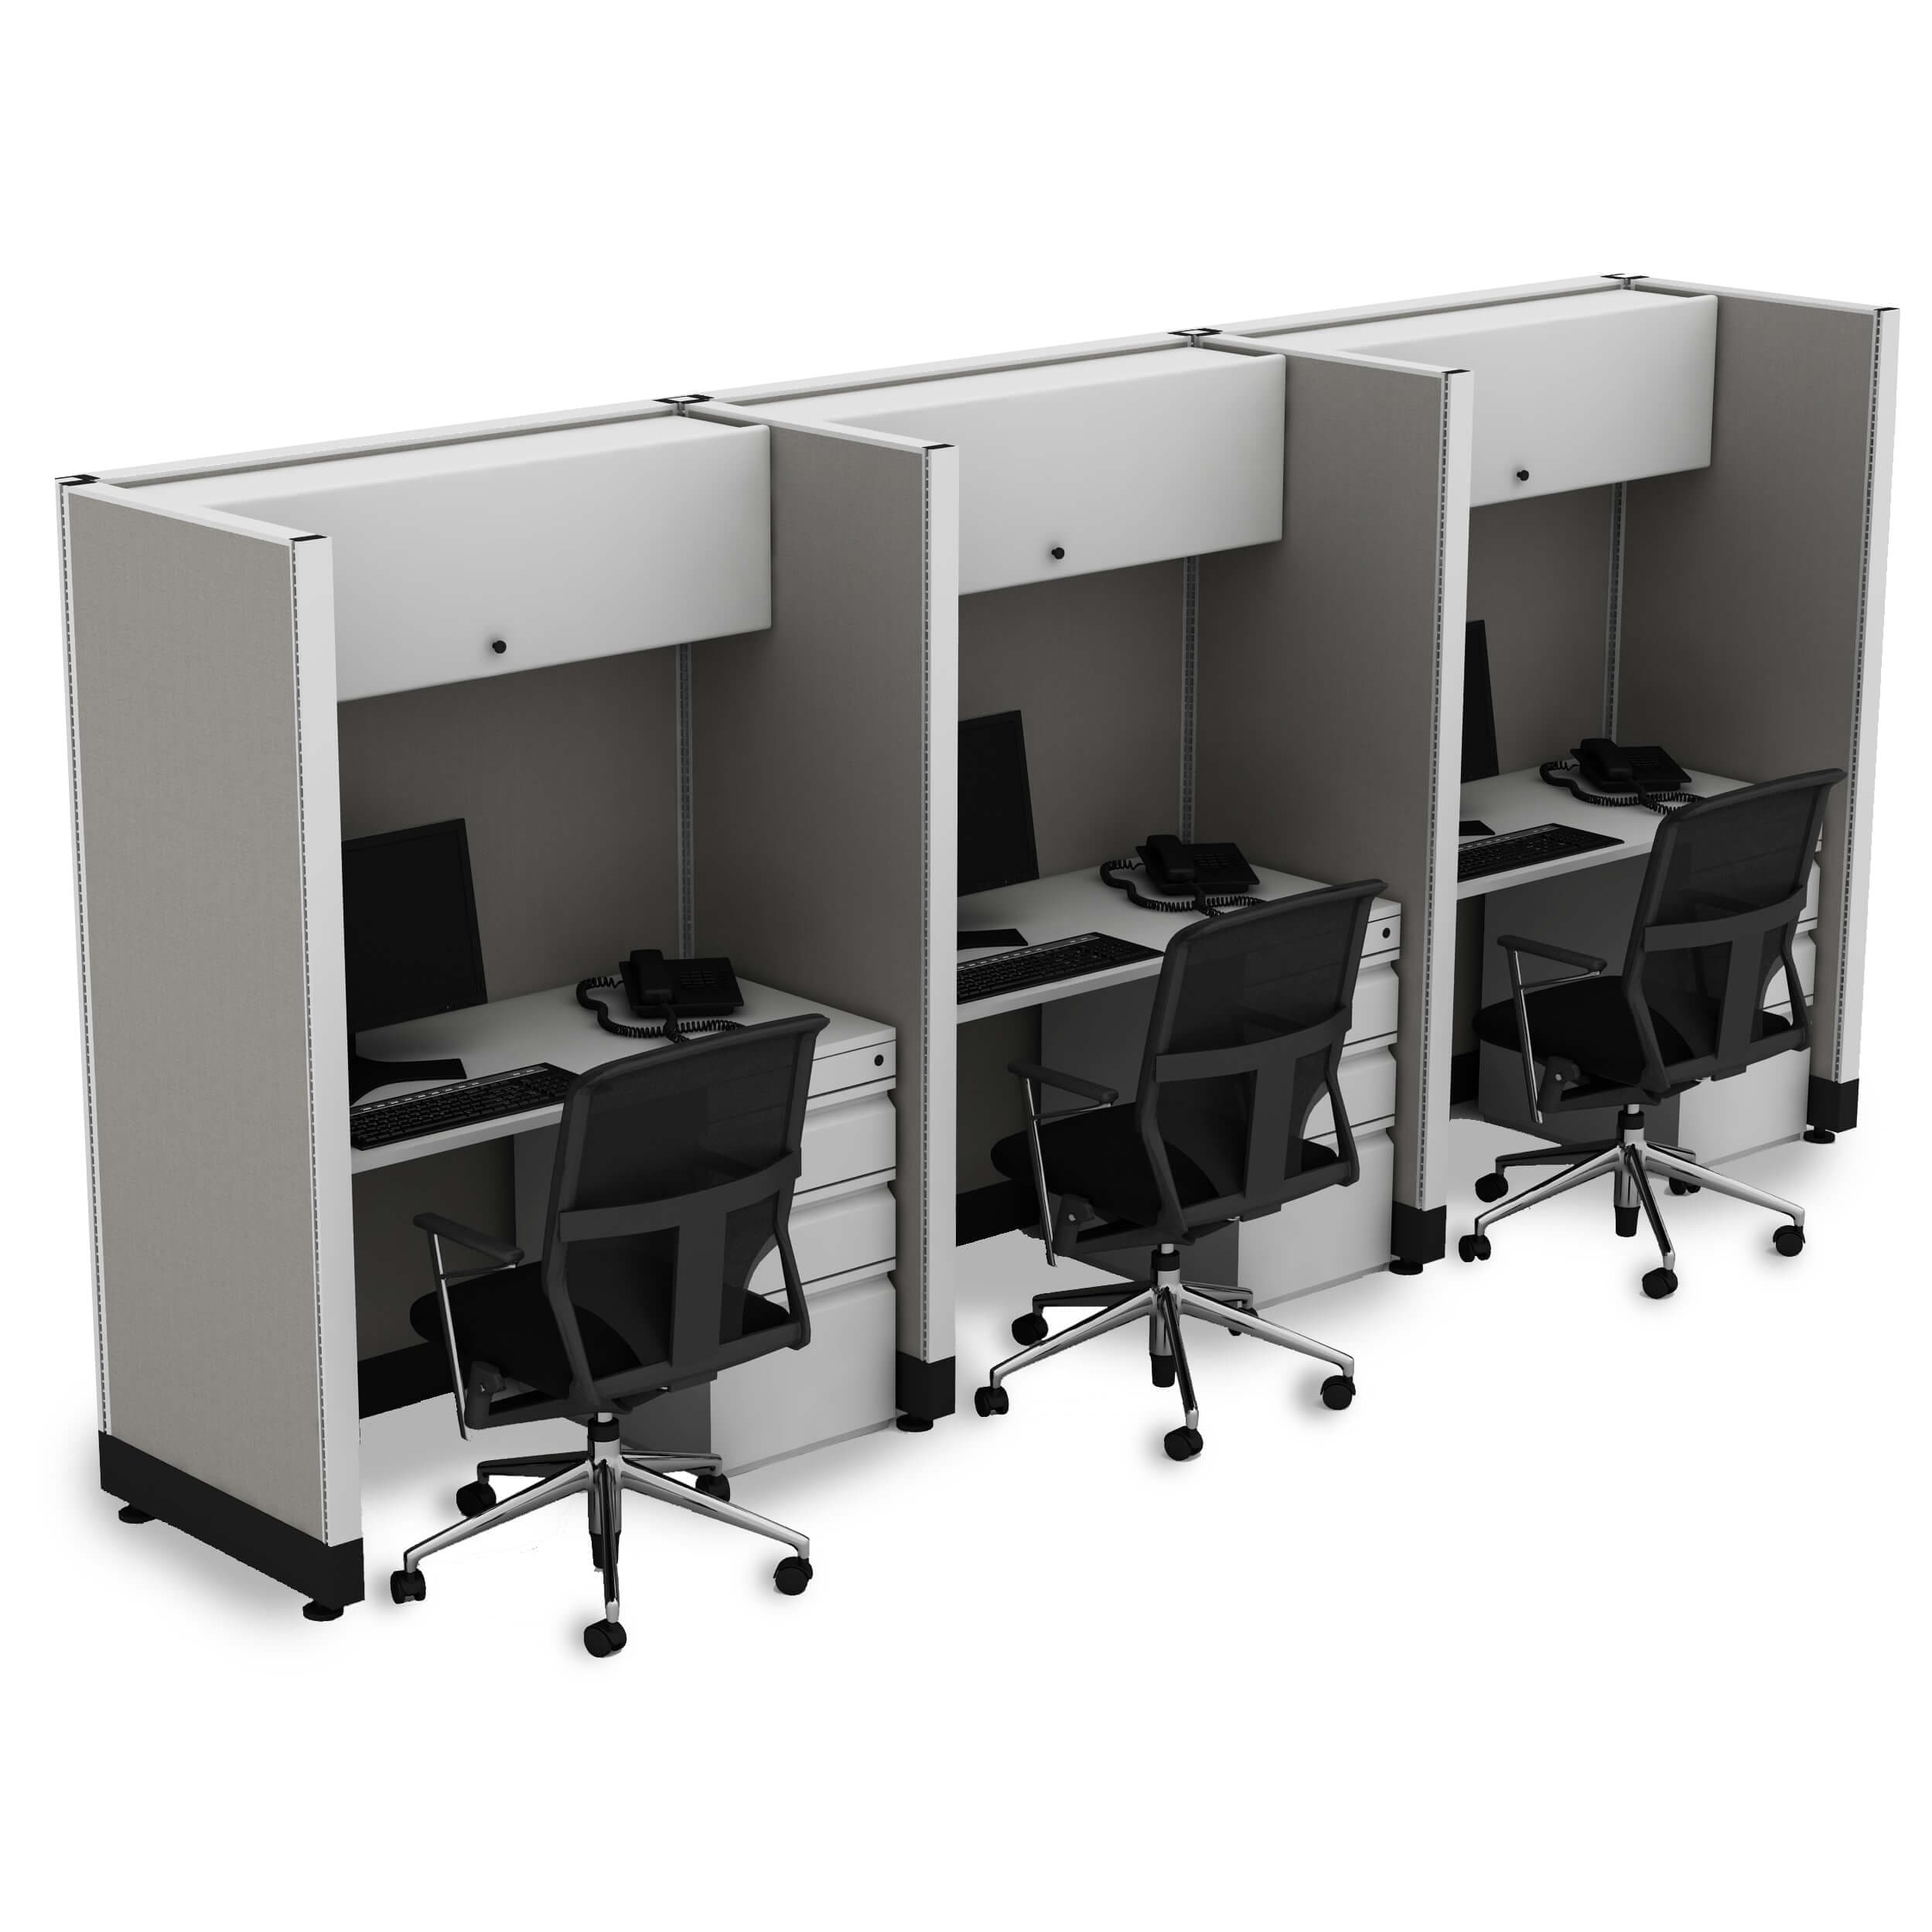 Tall Cubicles 67H 3pack Inline Unpowered (3x4 - White Desk White Paint - Assembly Required)